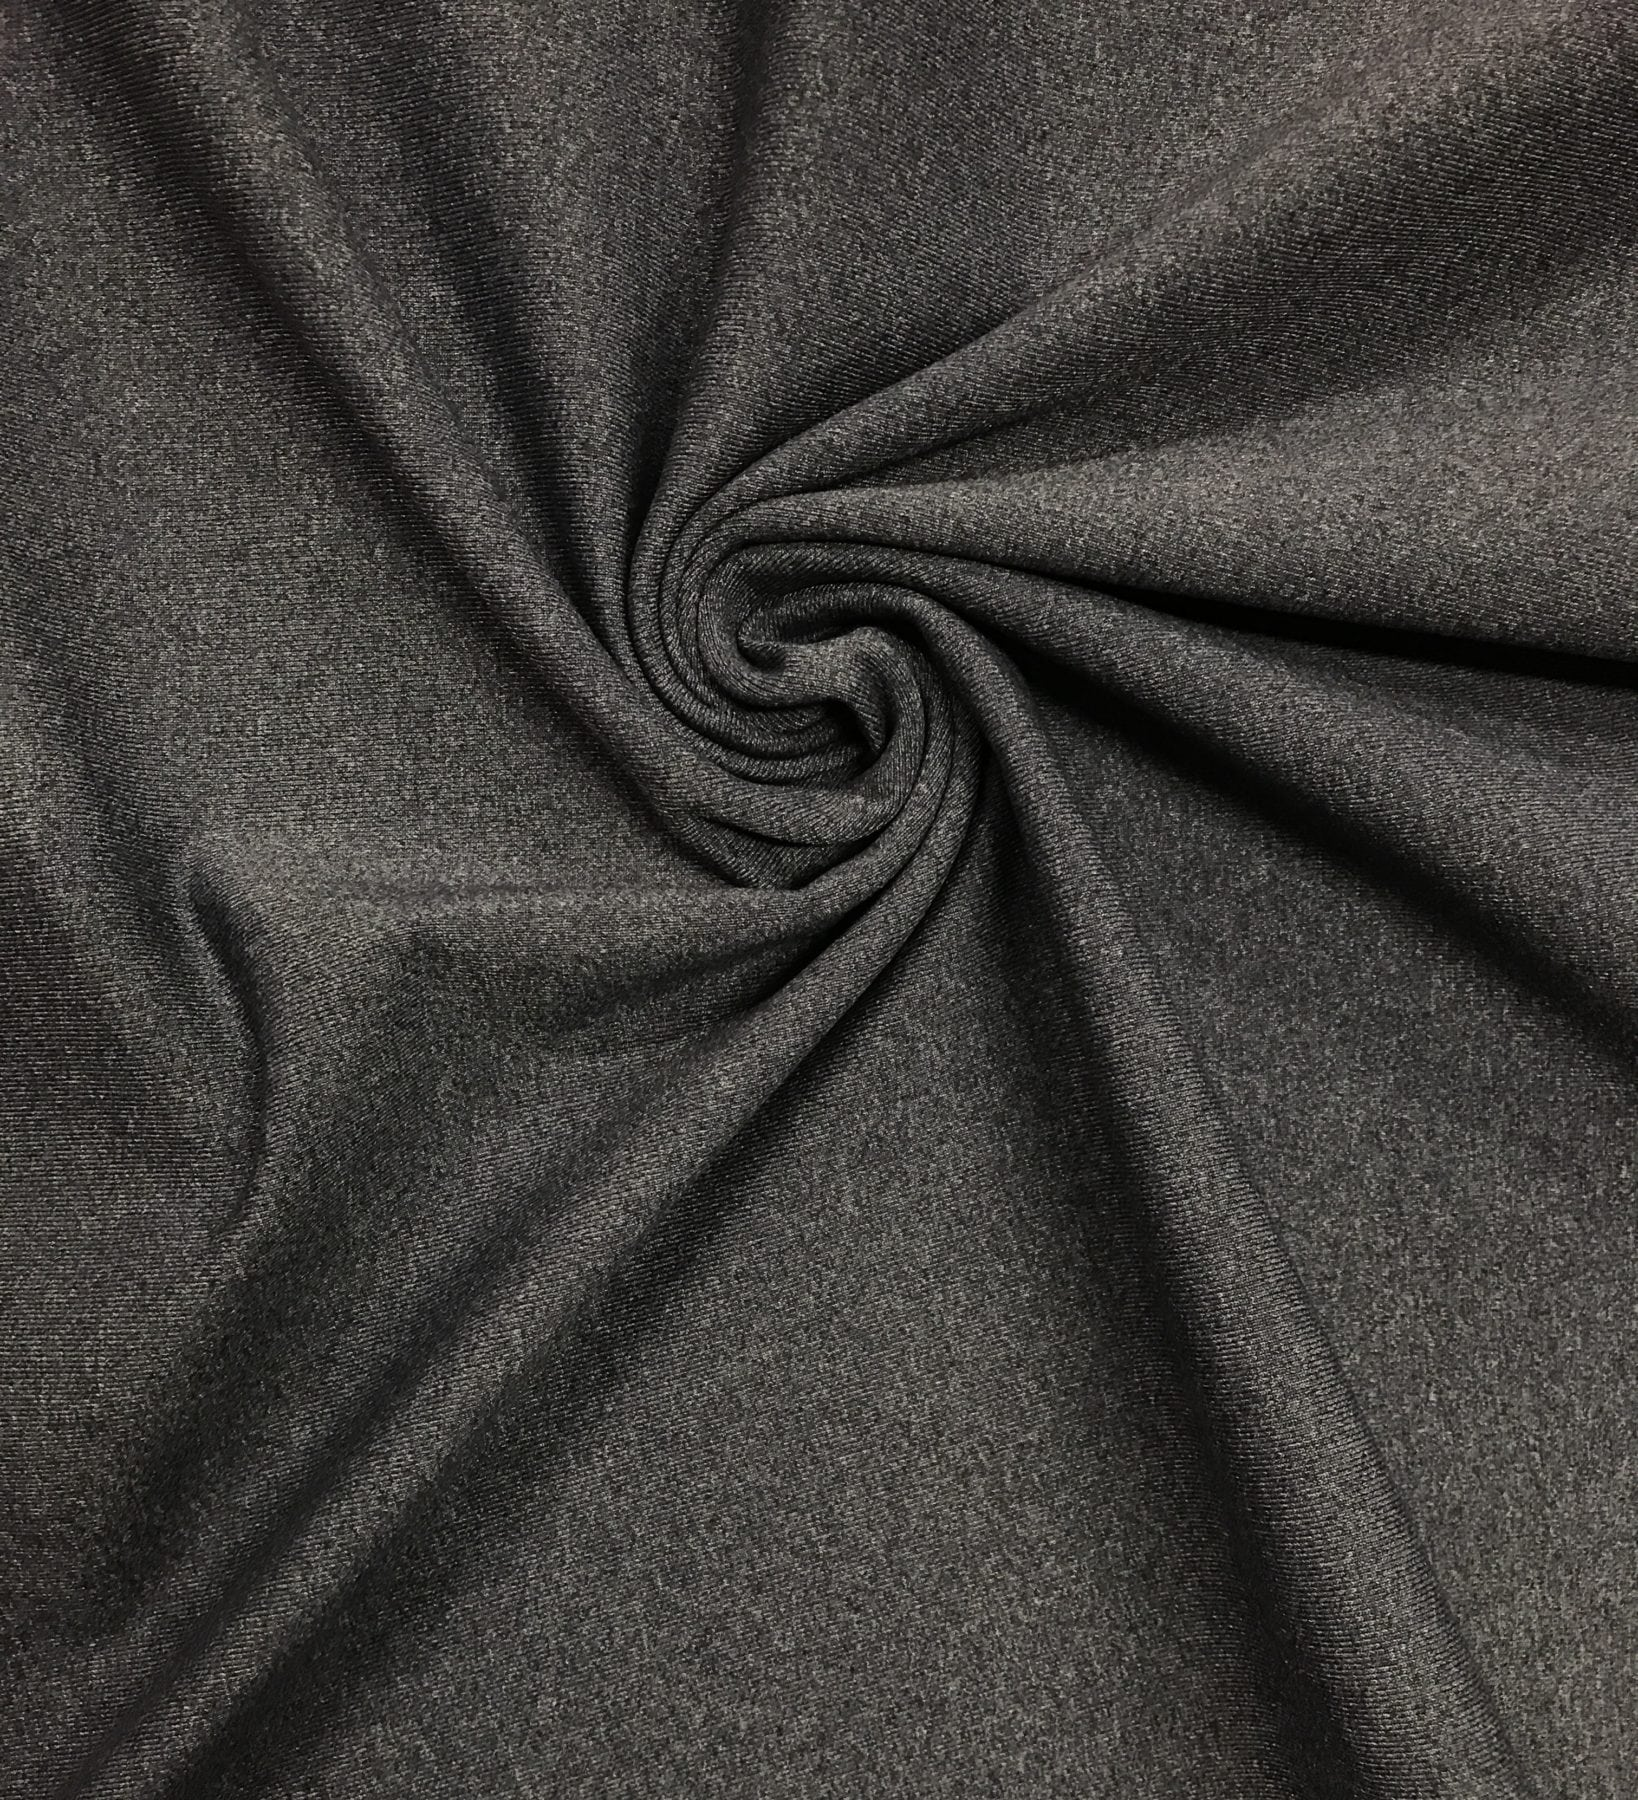 Charcoal Moisture Wicking Supplex, Invista Supplex fabirc, moisture wicking activewear fabric, wicking supplex, moisture wicking supplex, supplex spandex